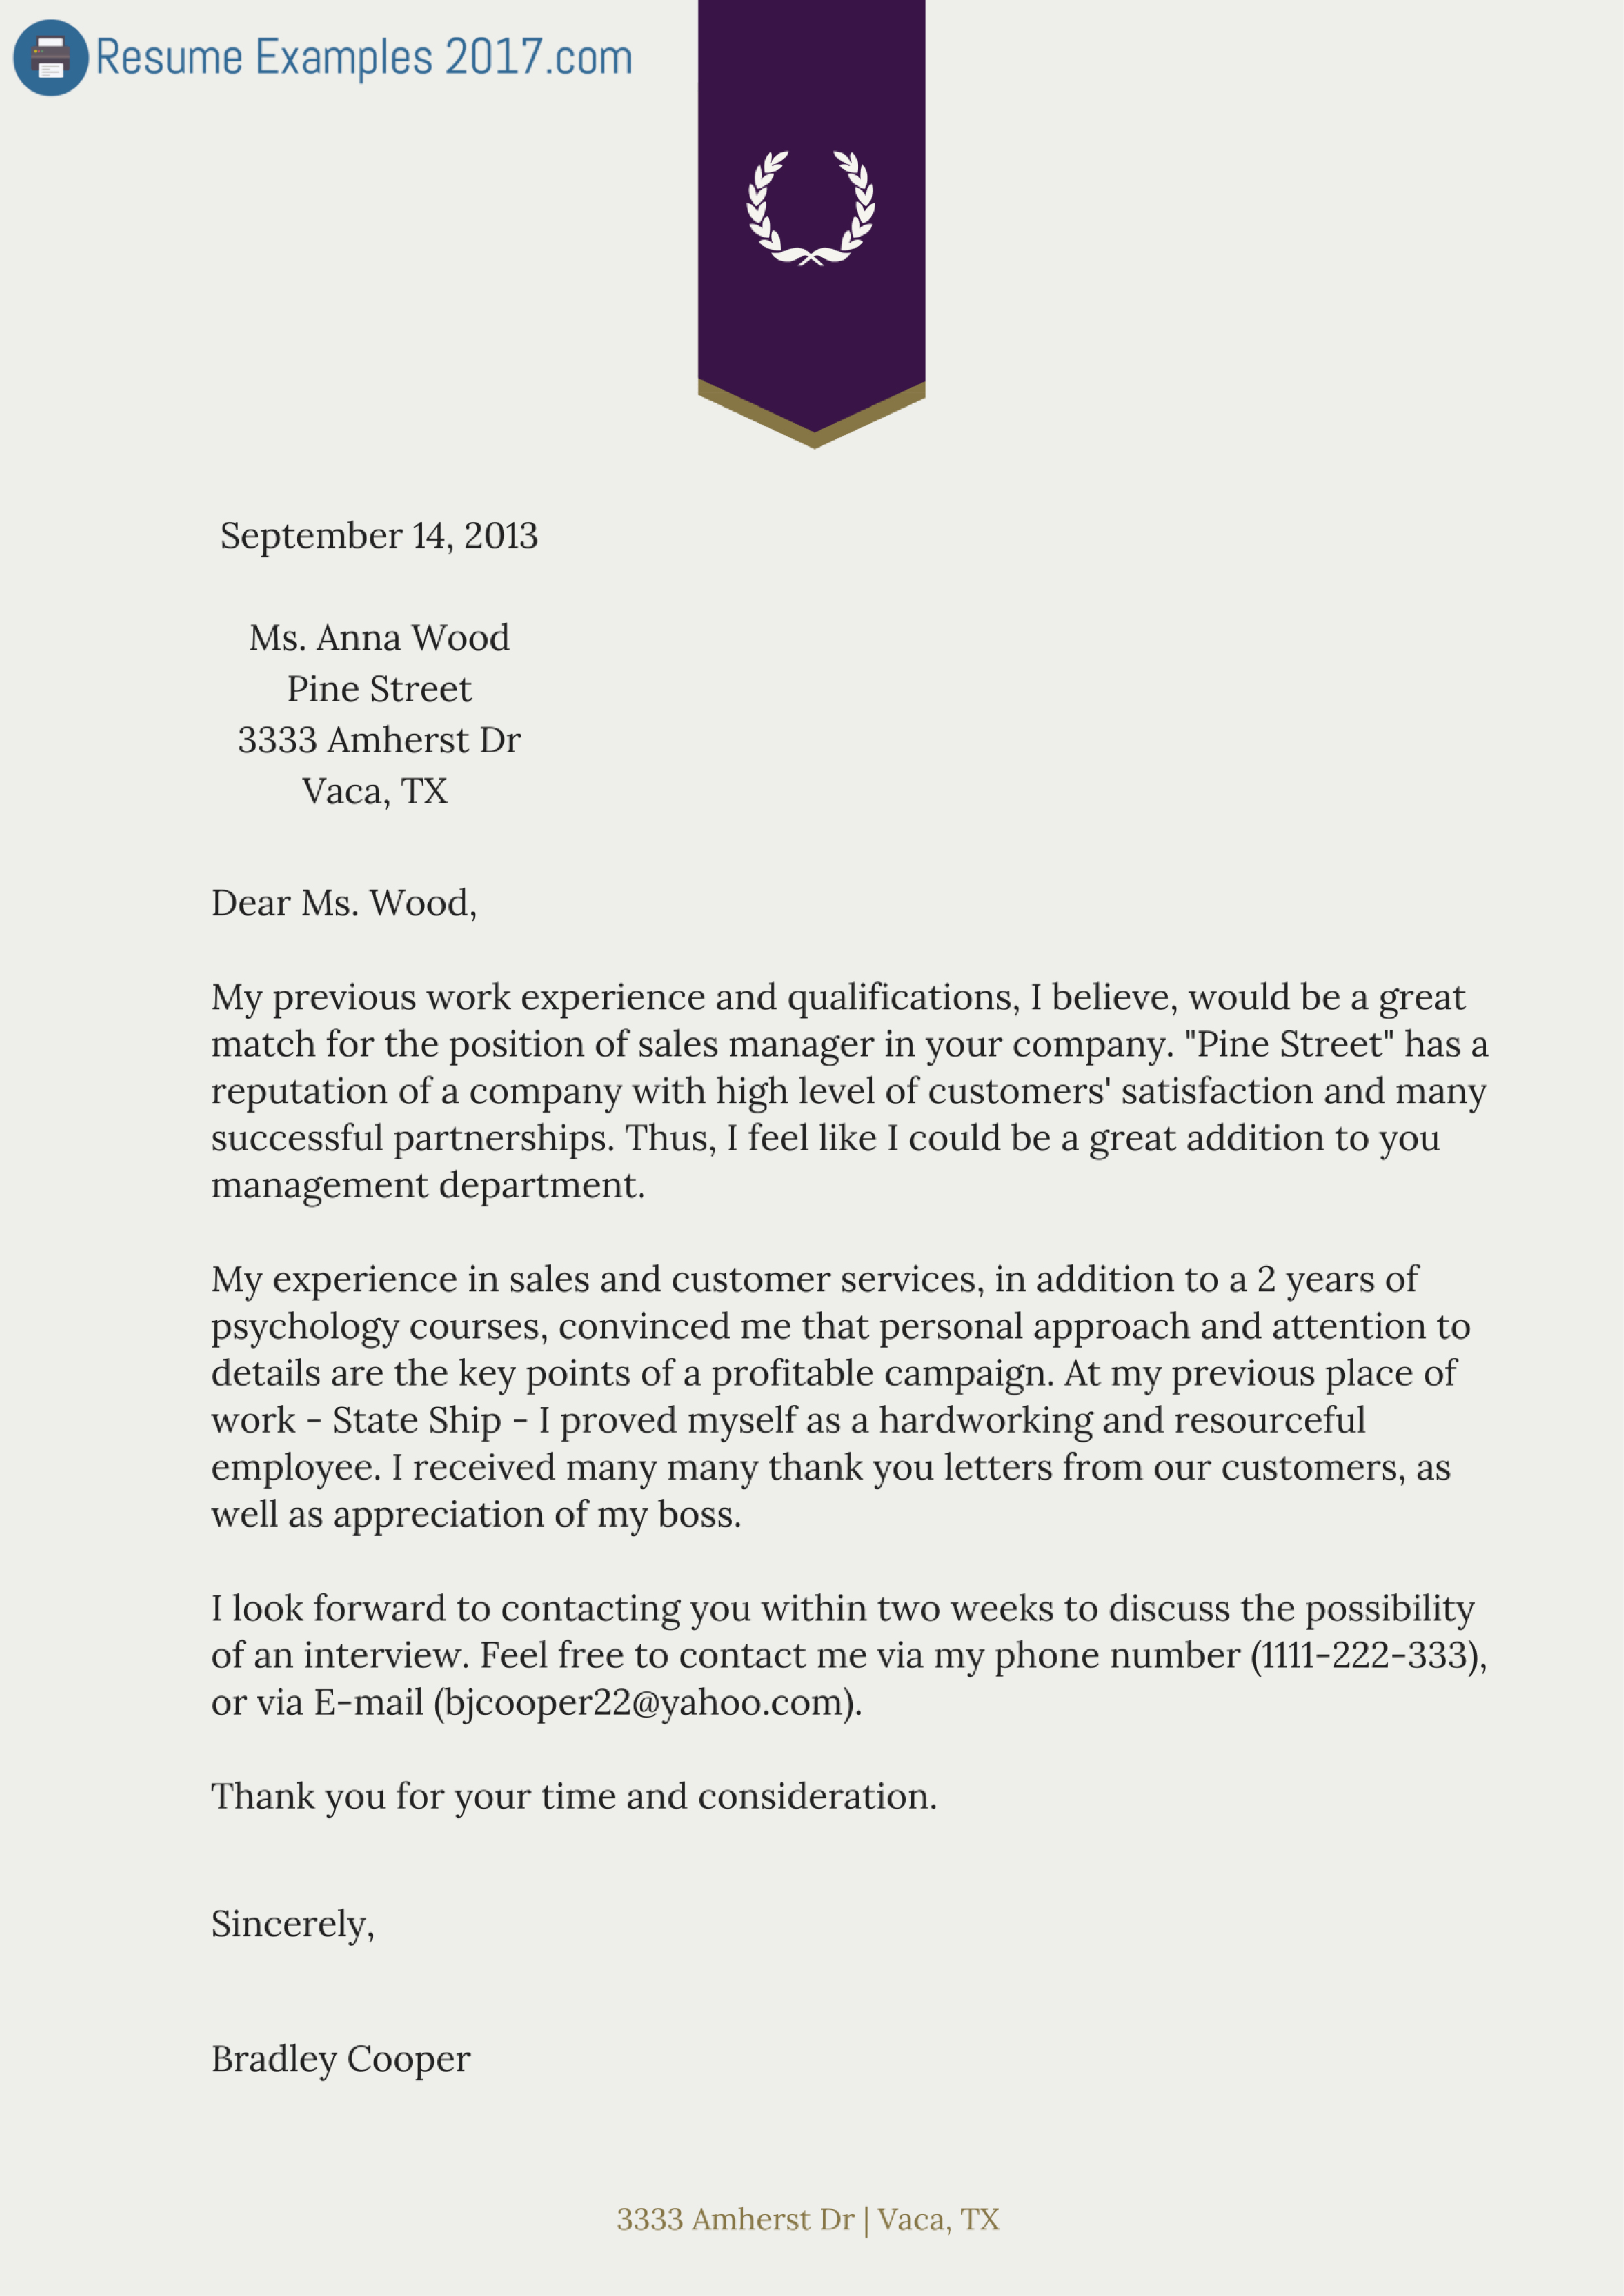 Resume and Cover Letter formats Elegant Download Cover Letter Samples